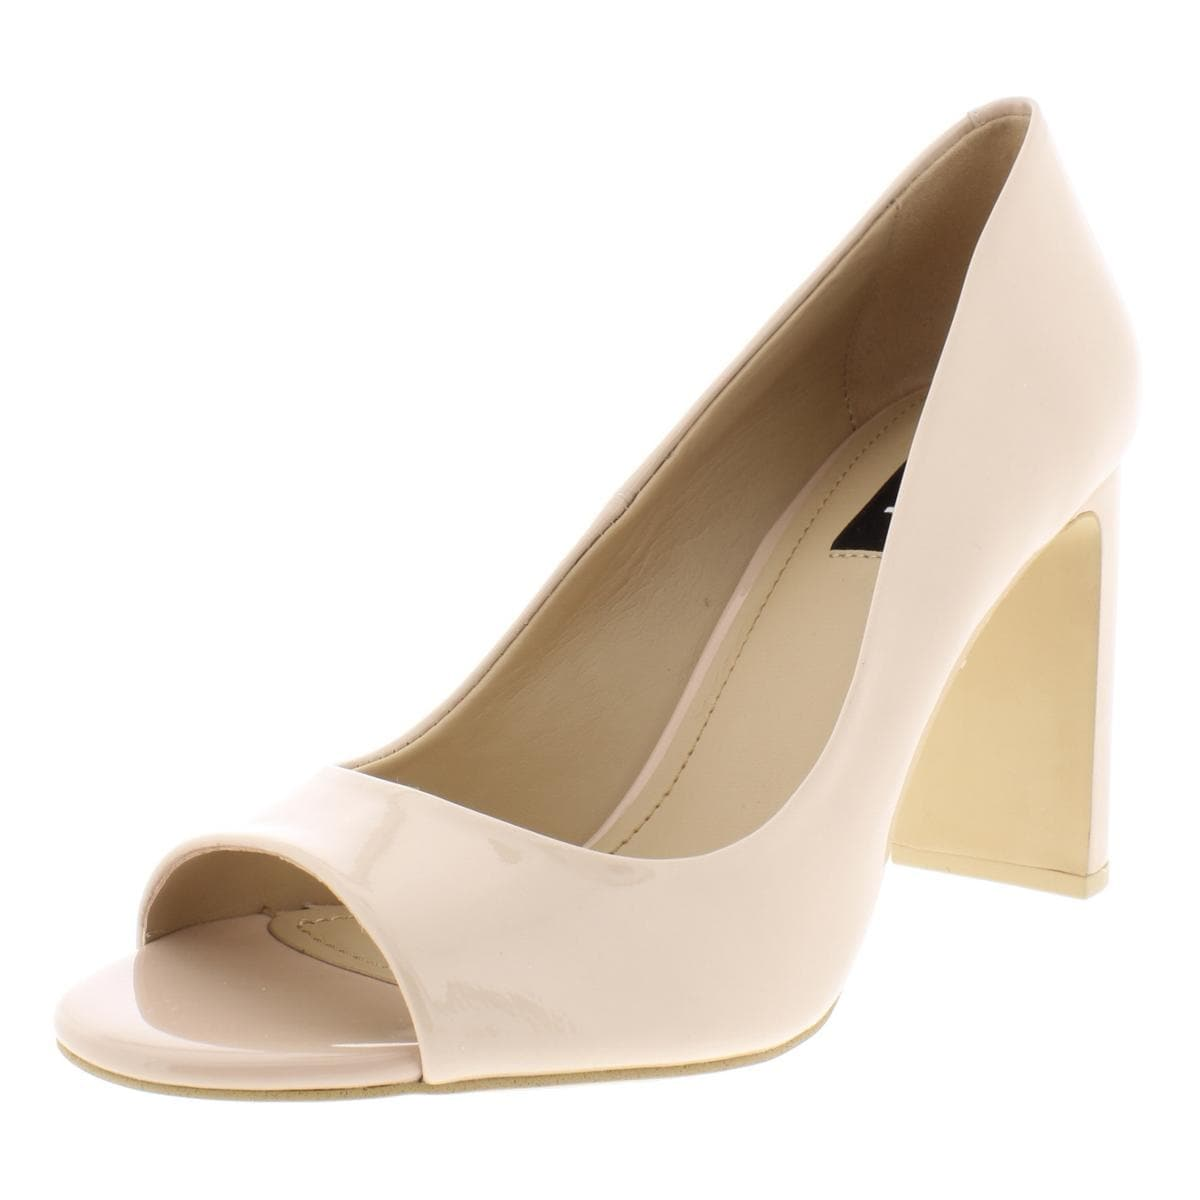 d524426a56f Shop DKNY Womens Jade Dress Heels Patent Leather Open Toe - Free ...